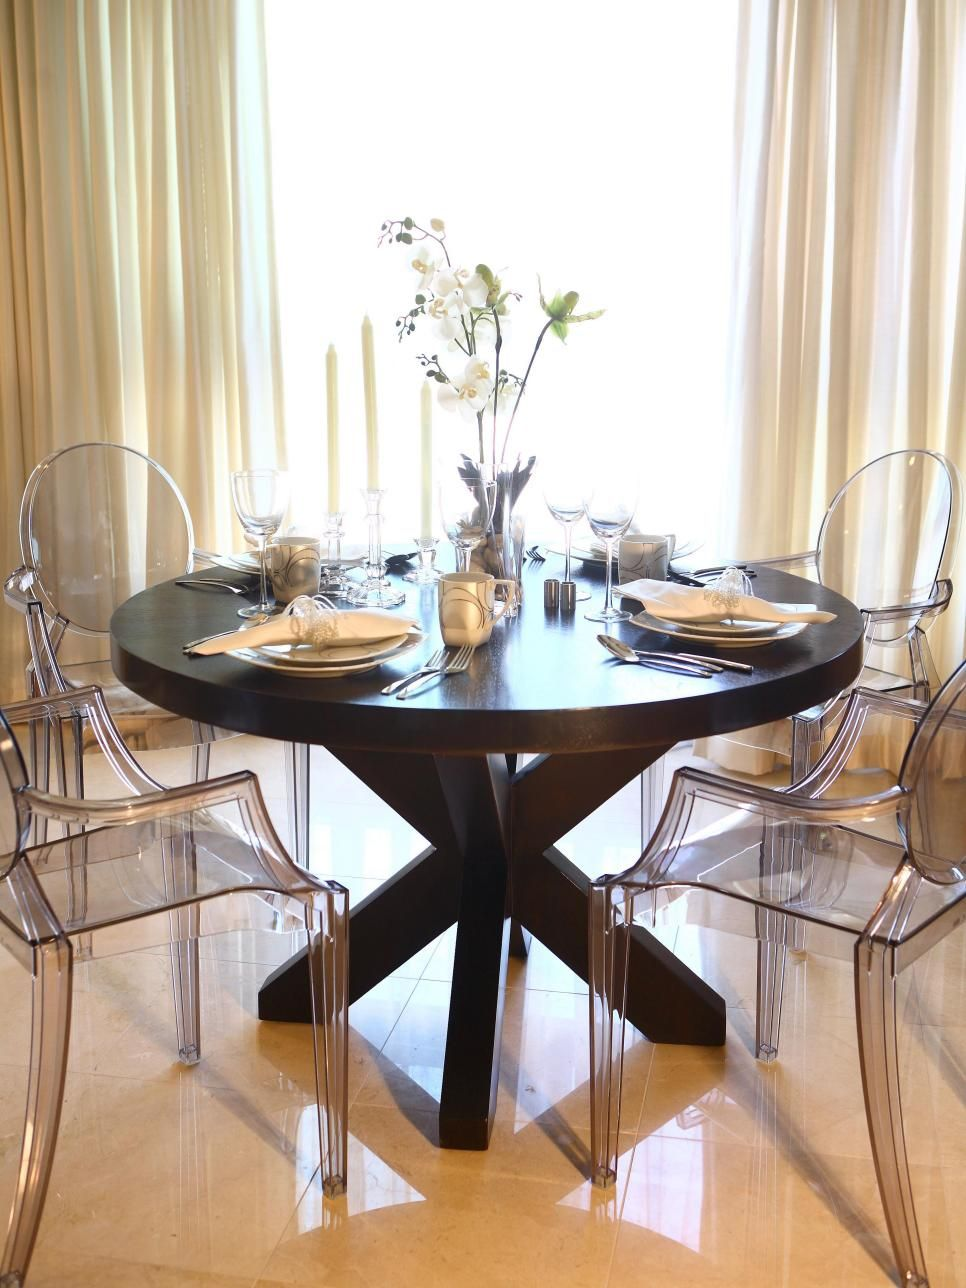 This Elegant Dining Room Features A Large Round Wood Dining Table